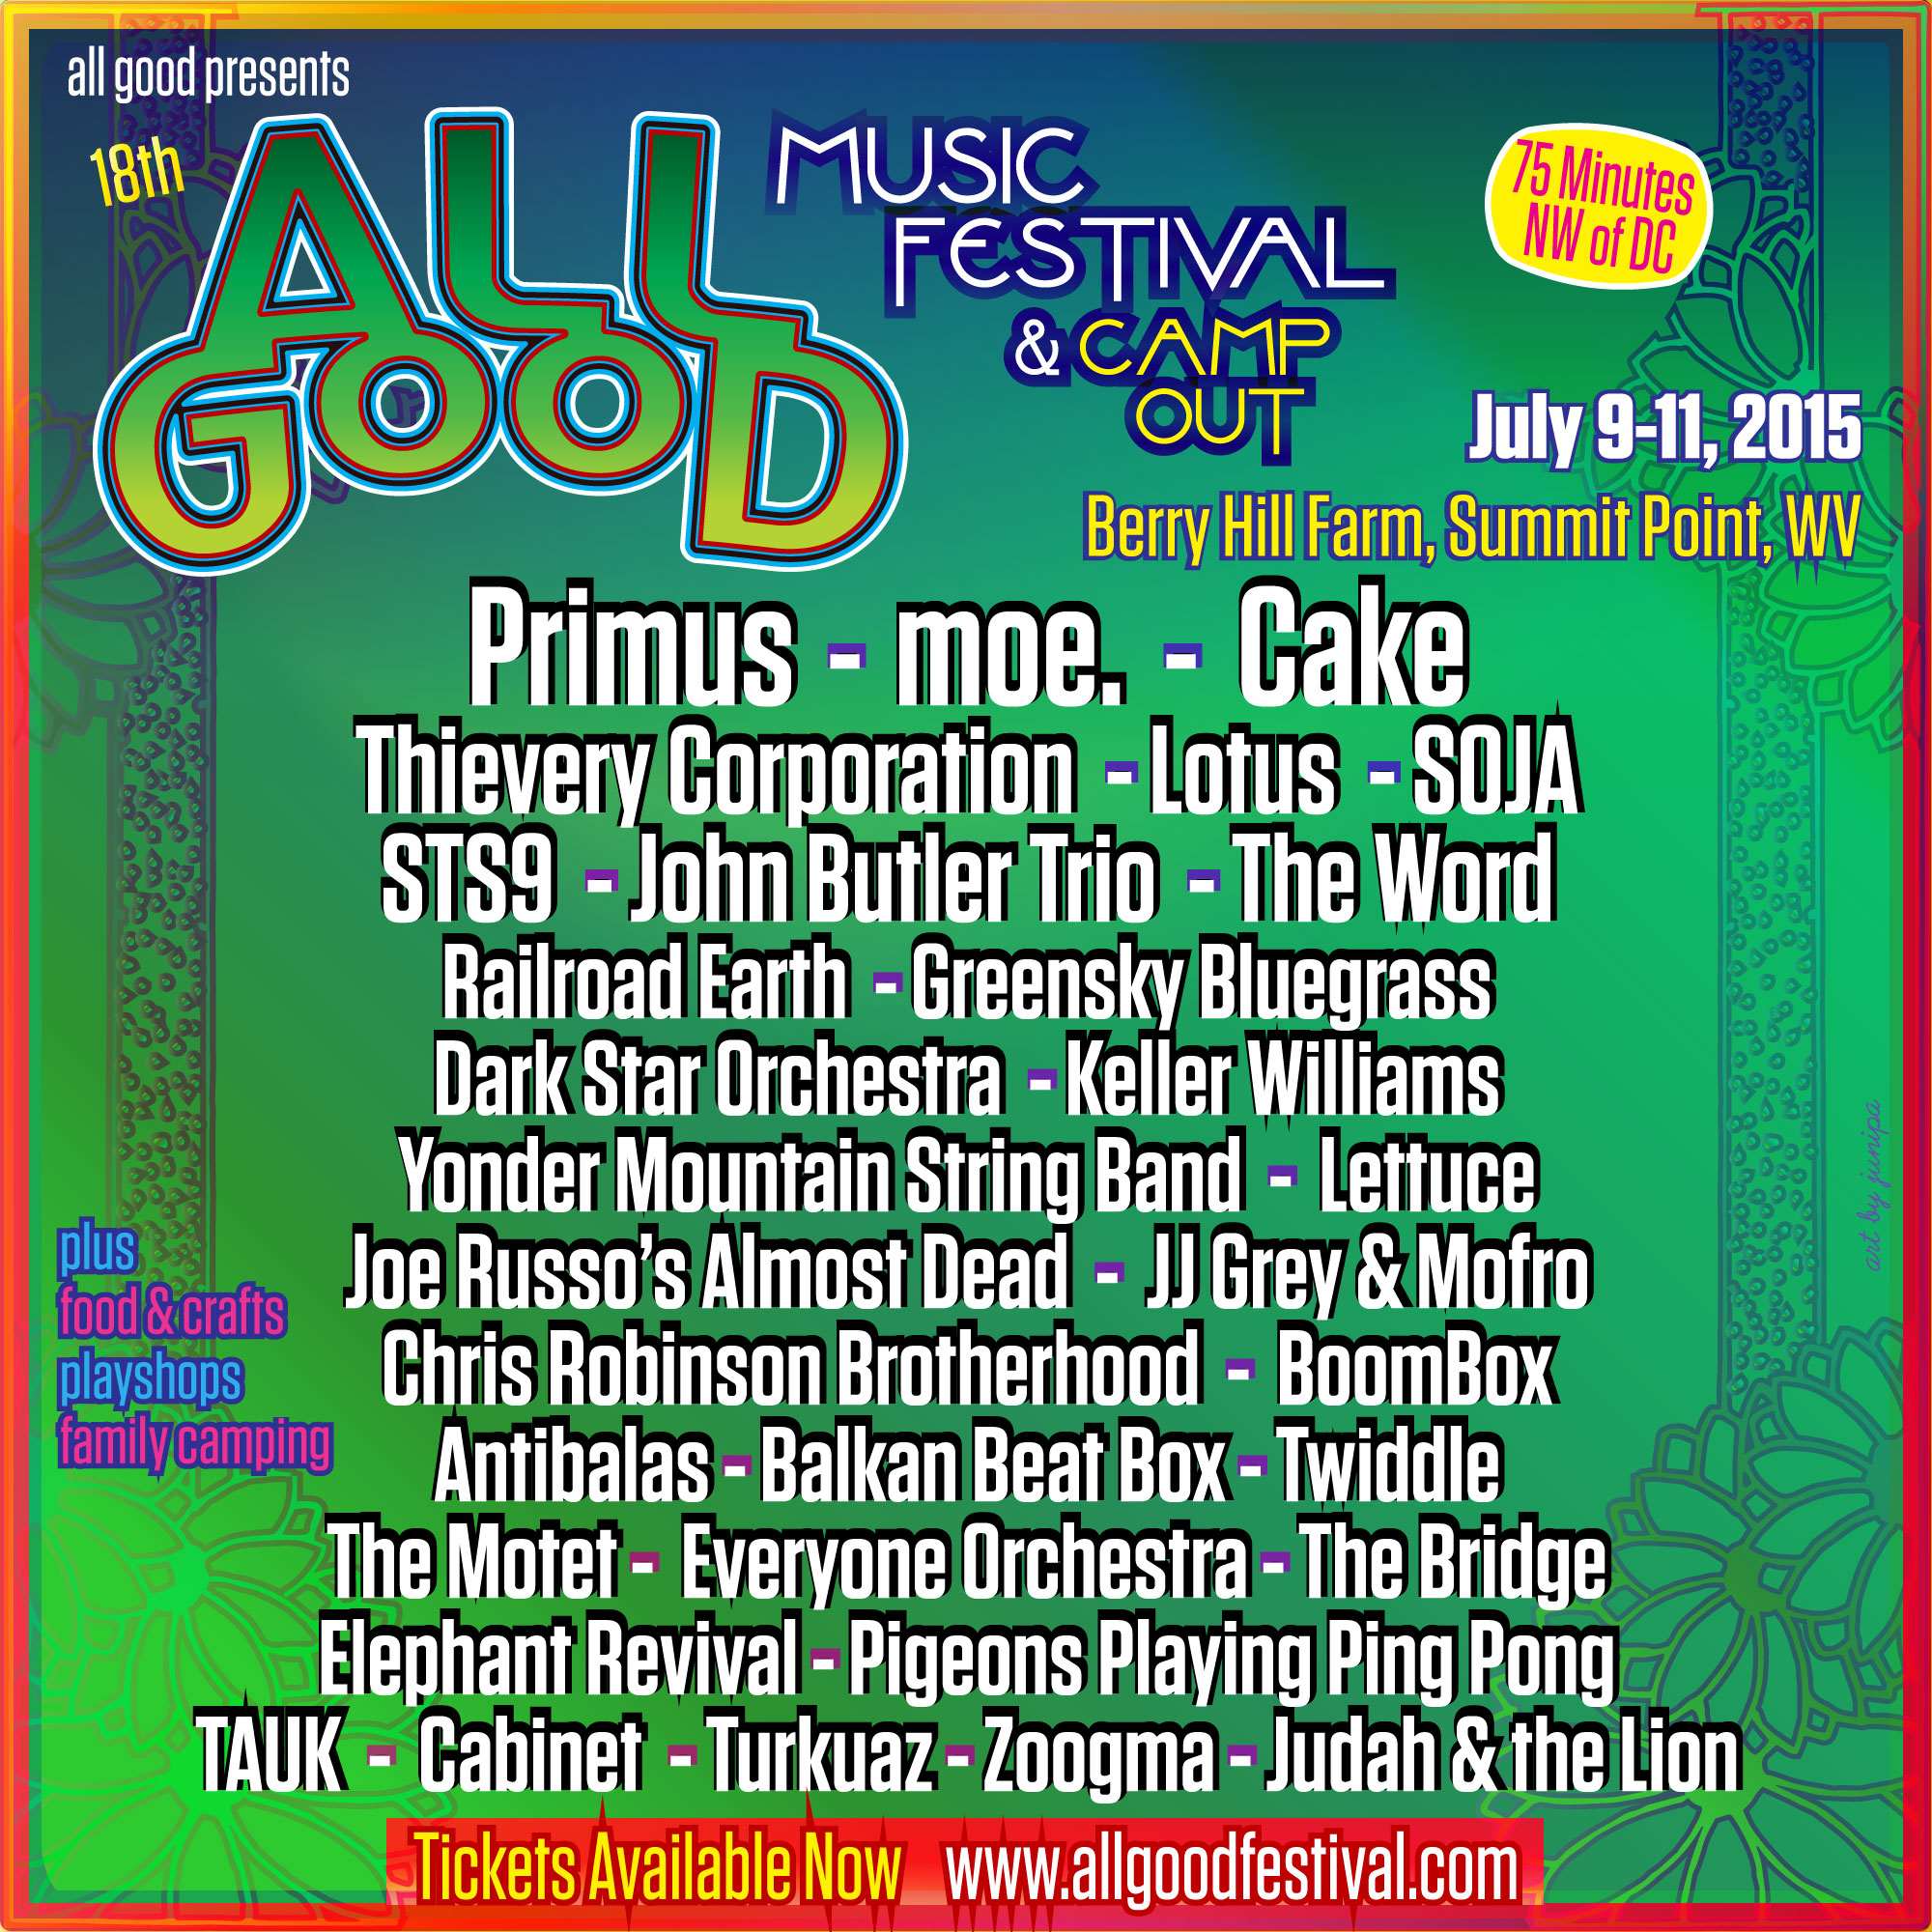 All Good Festival Adds Joe Russo's Almost Dead, Railroad Earth & More in Final Lineup Announcement